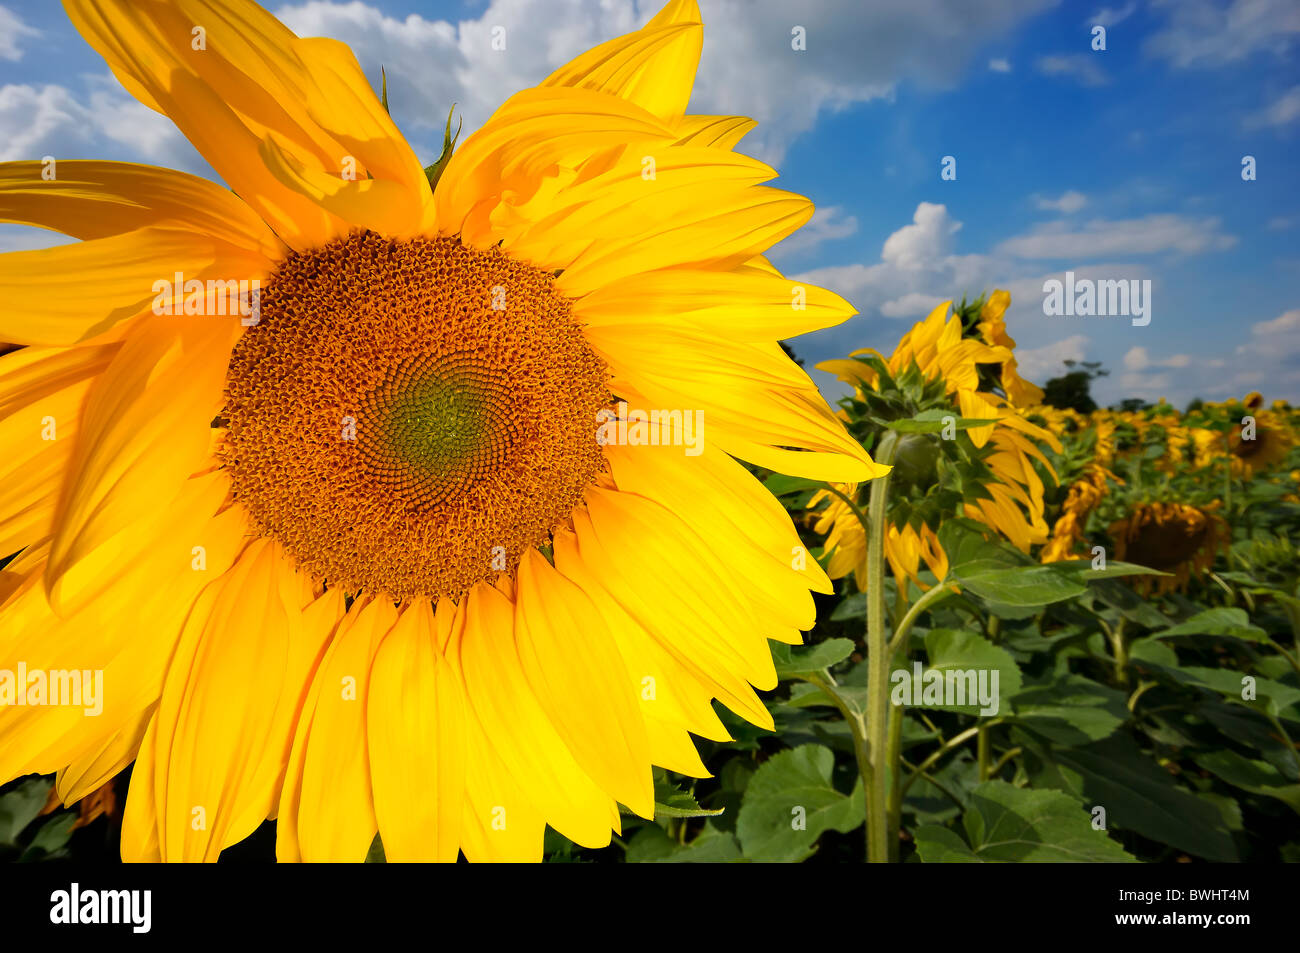 large sunflower in field - Stock Image